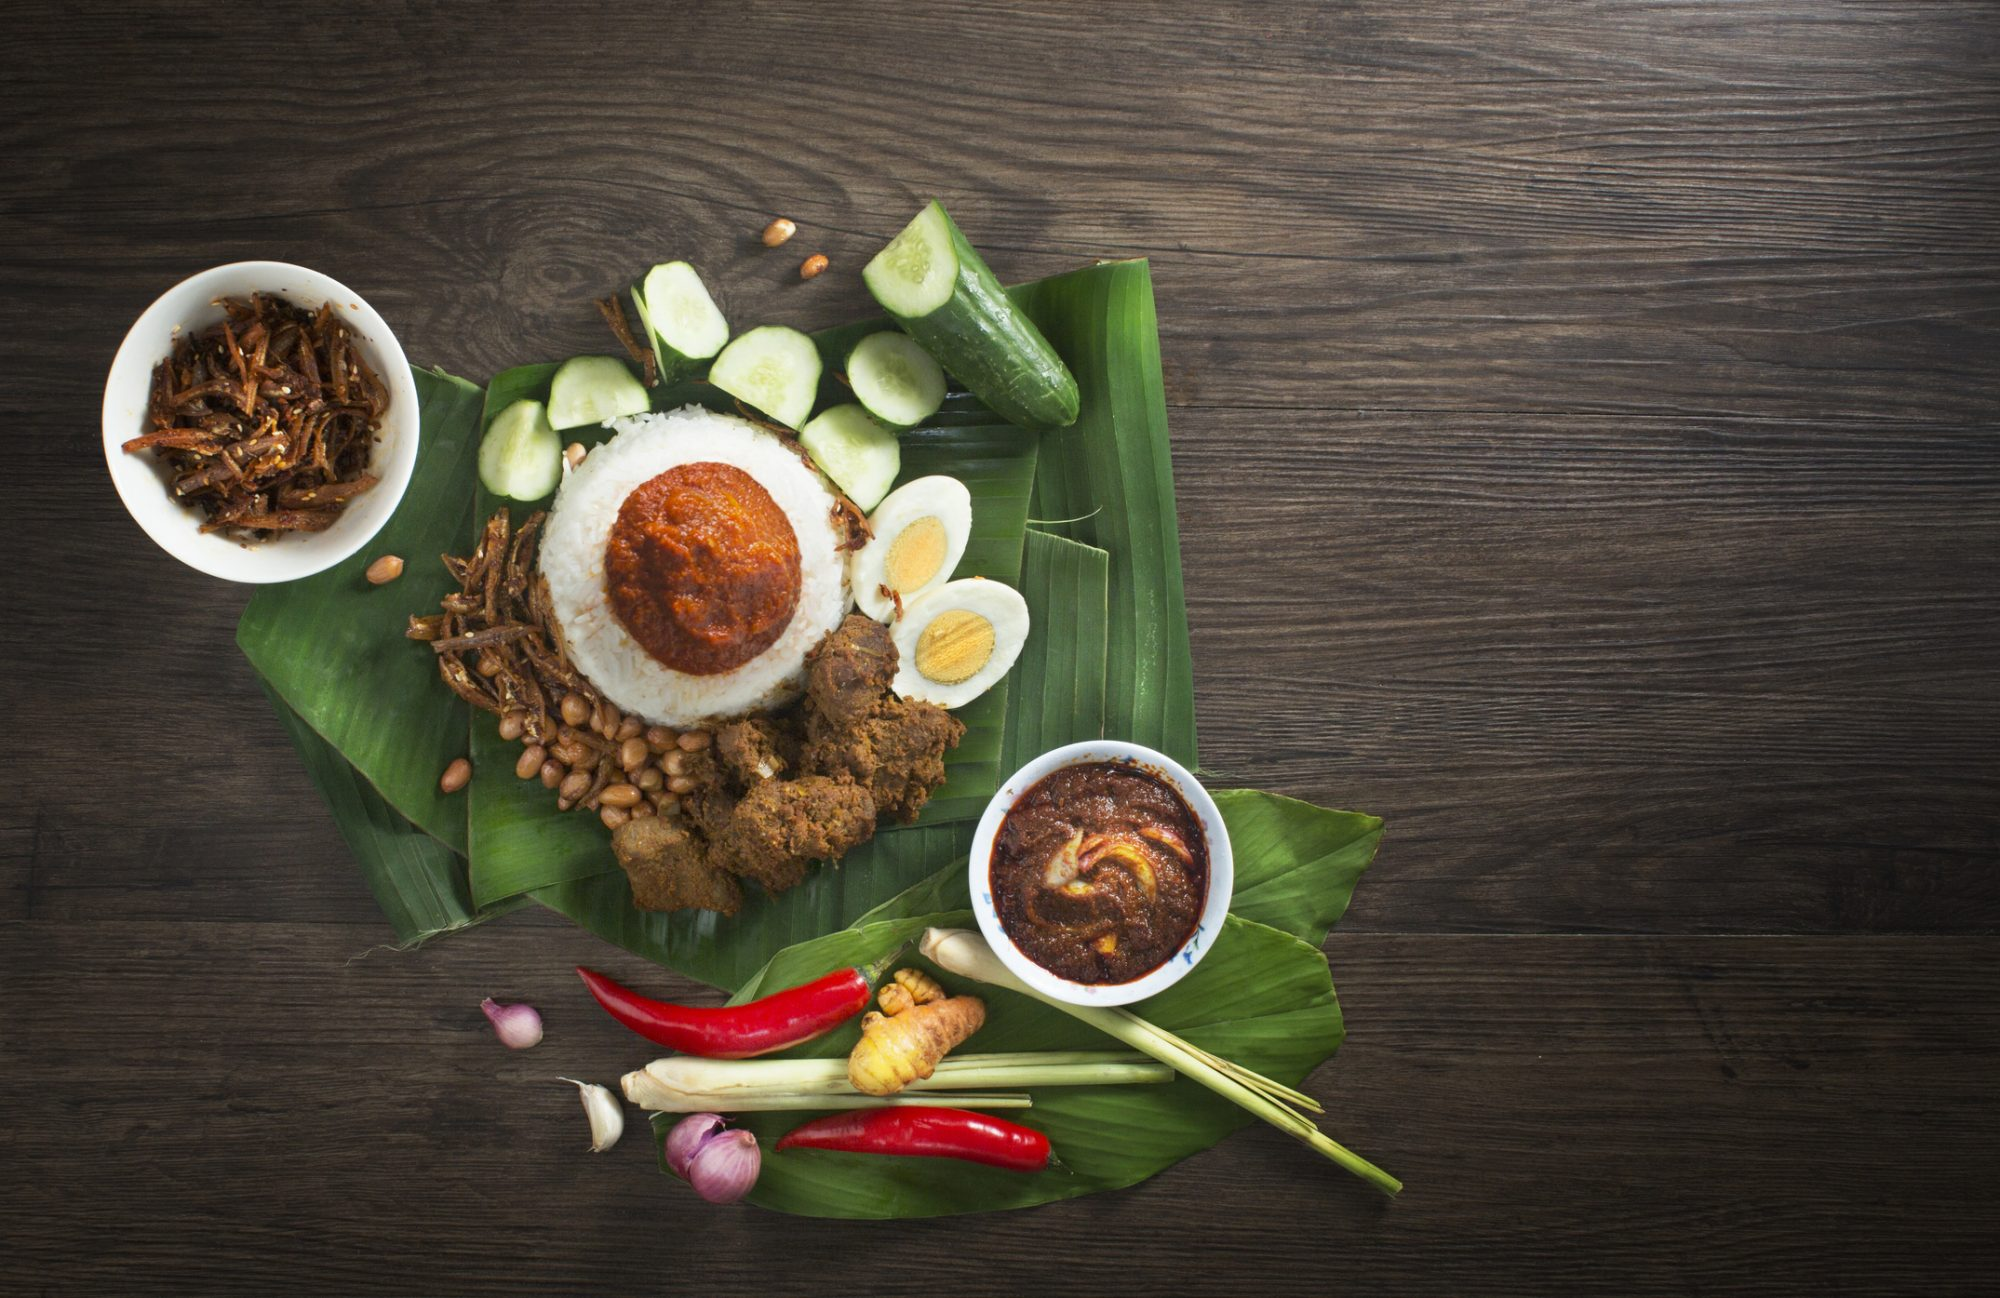 Malaysia traditional food  Nasi lemak  and ingredients on rustic wooden table top.